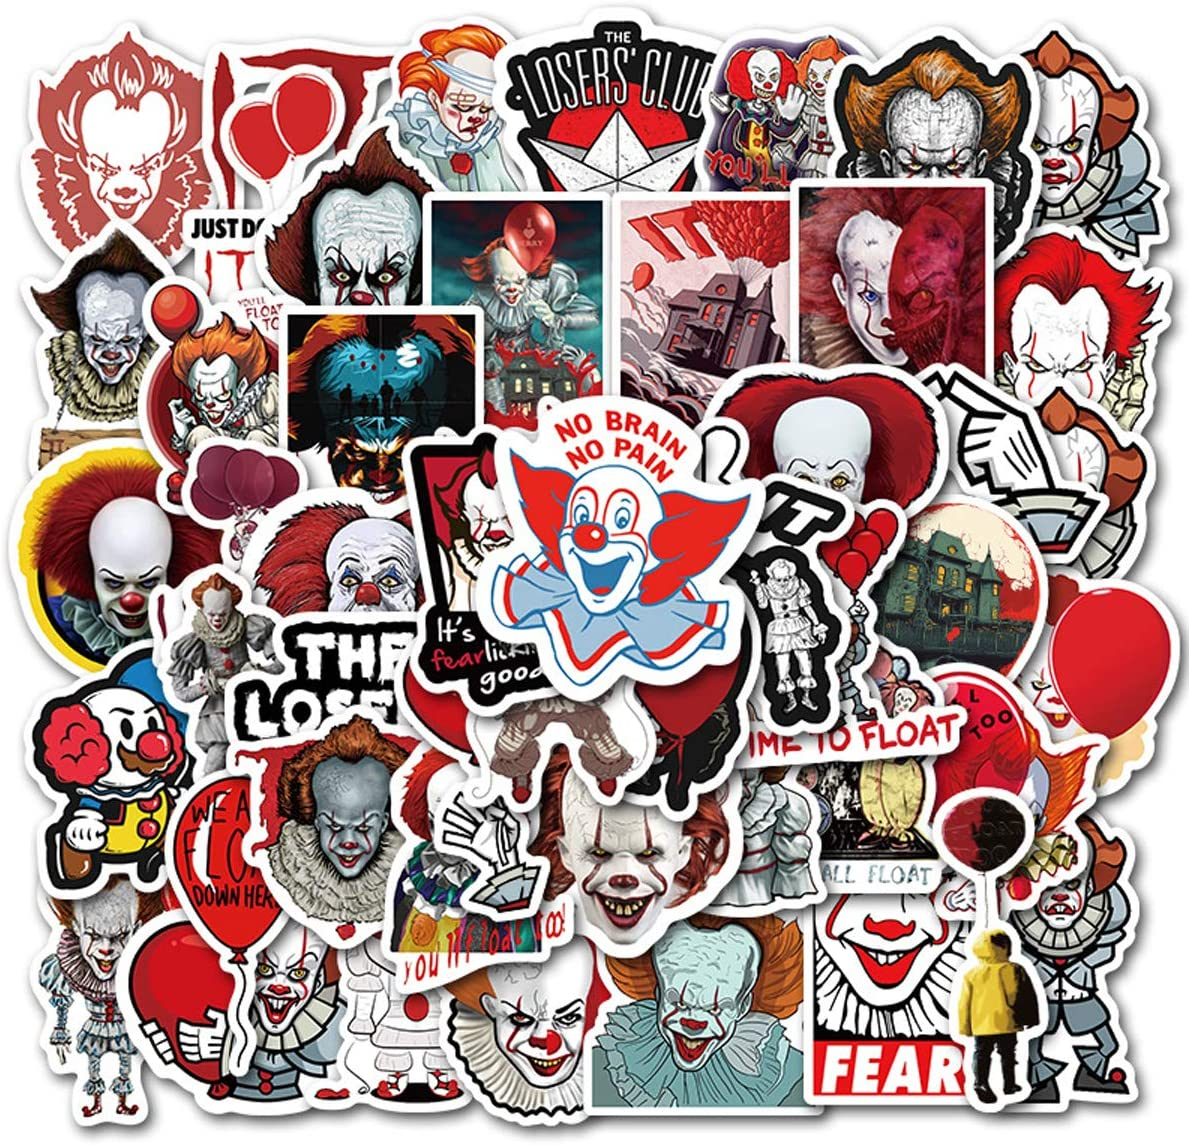 50 PCS Laptop Sticker Terror Movie It Theme Stickers Waterproof Vinyl Scrapbook Stickers Car Motorcycle Bicycle Luggage Decal (Terror Movie)